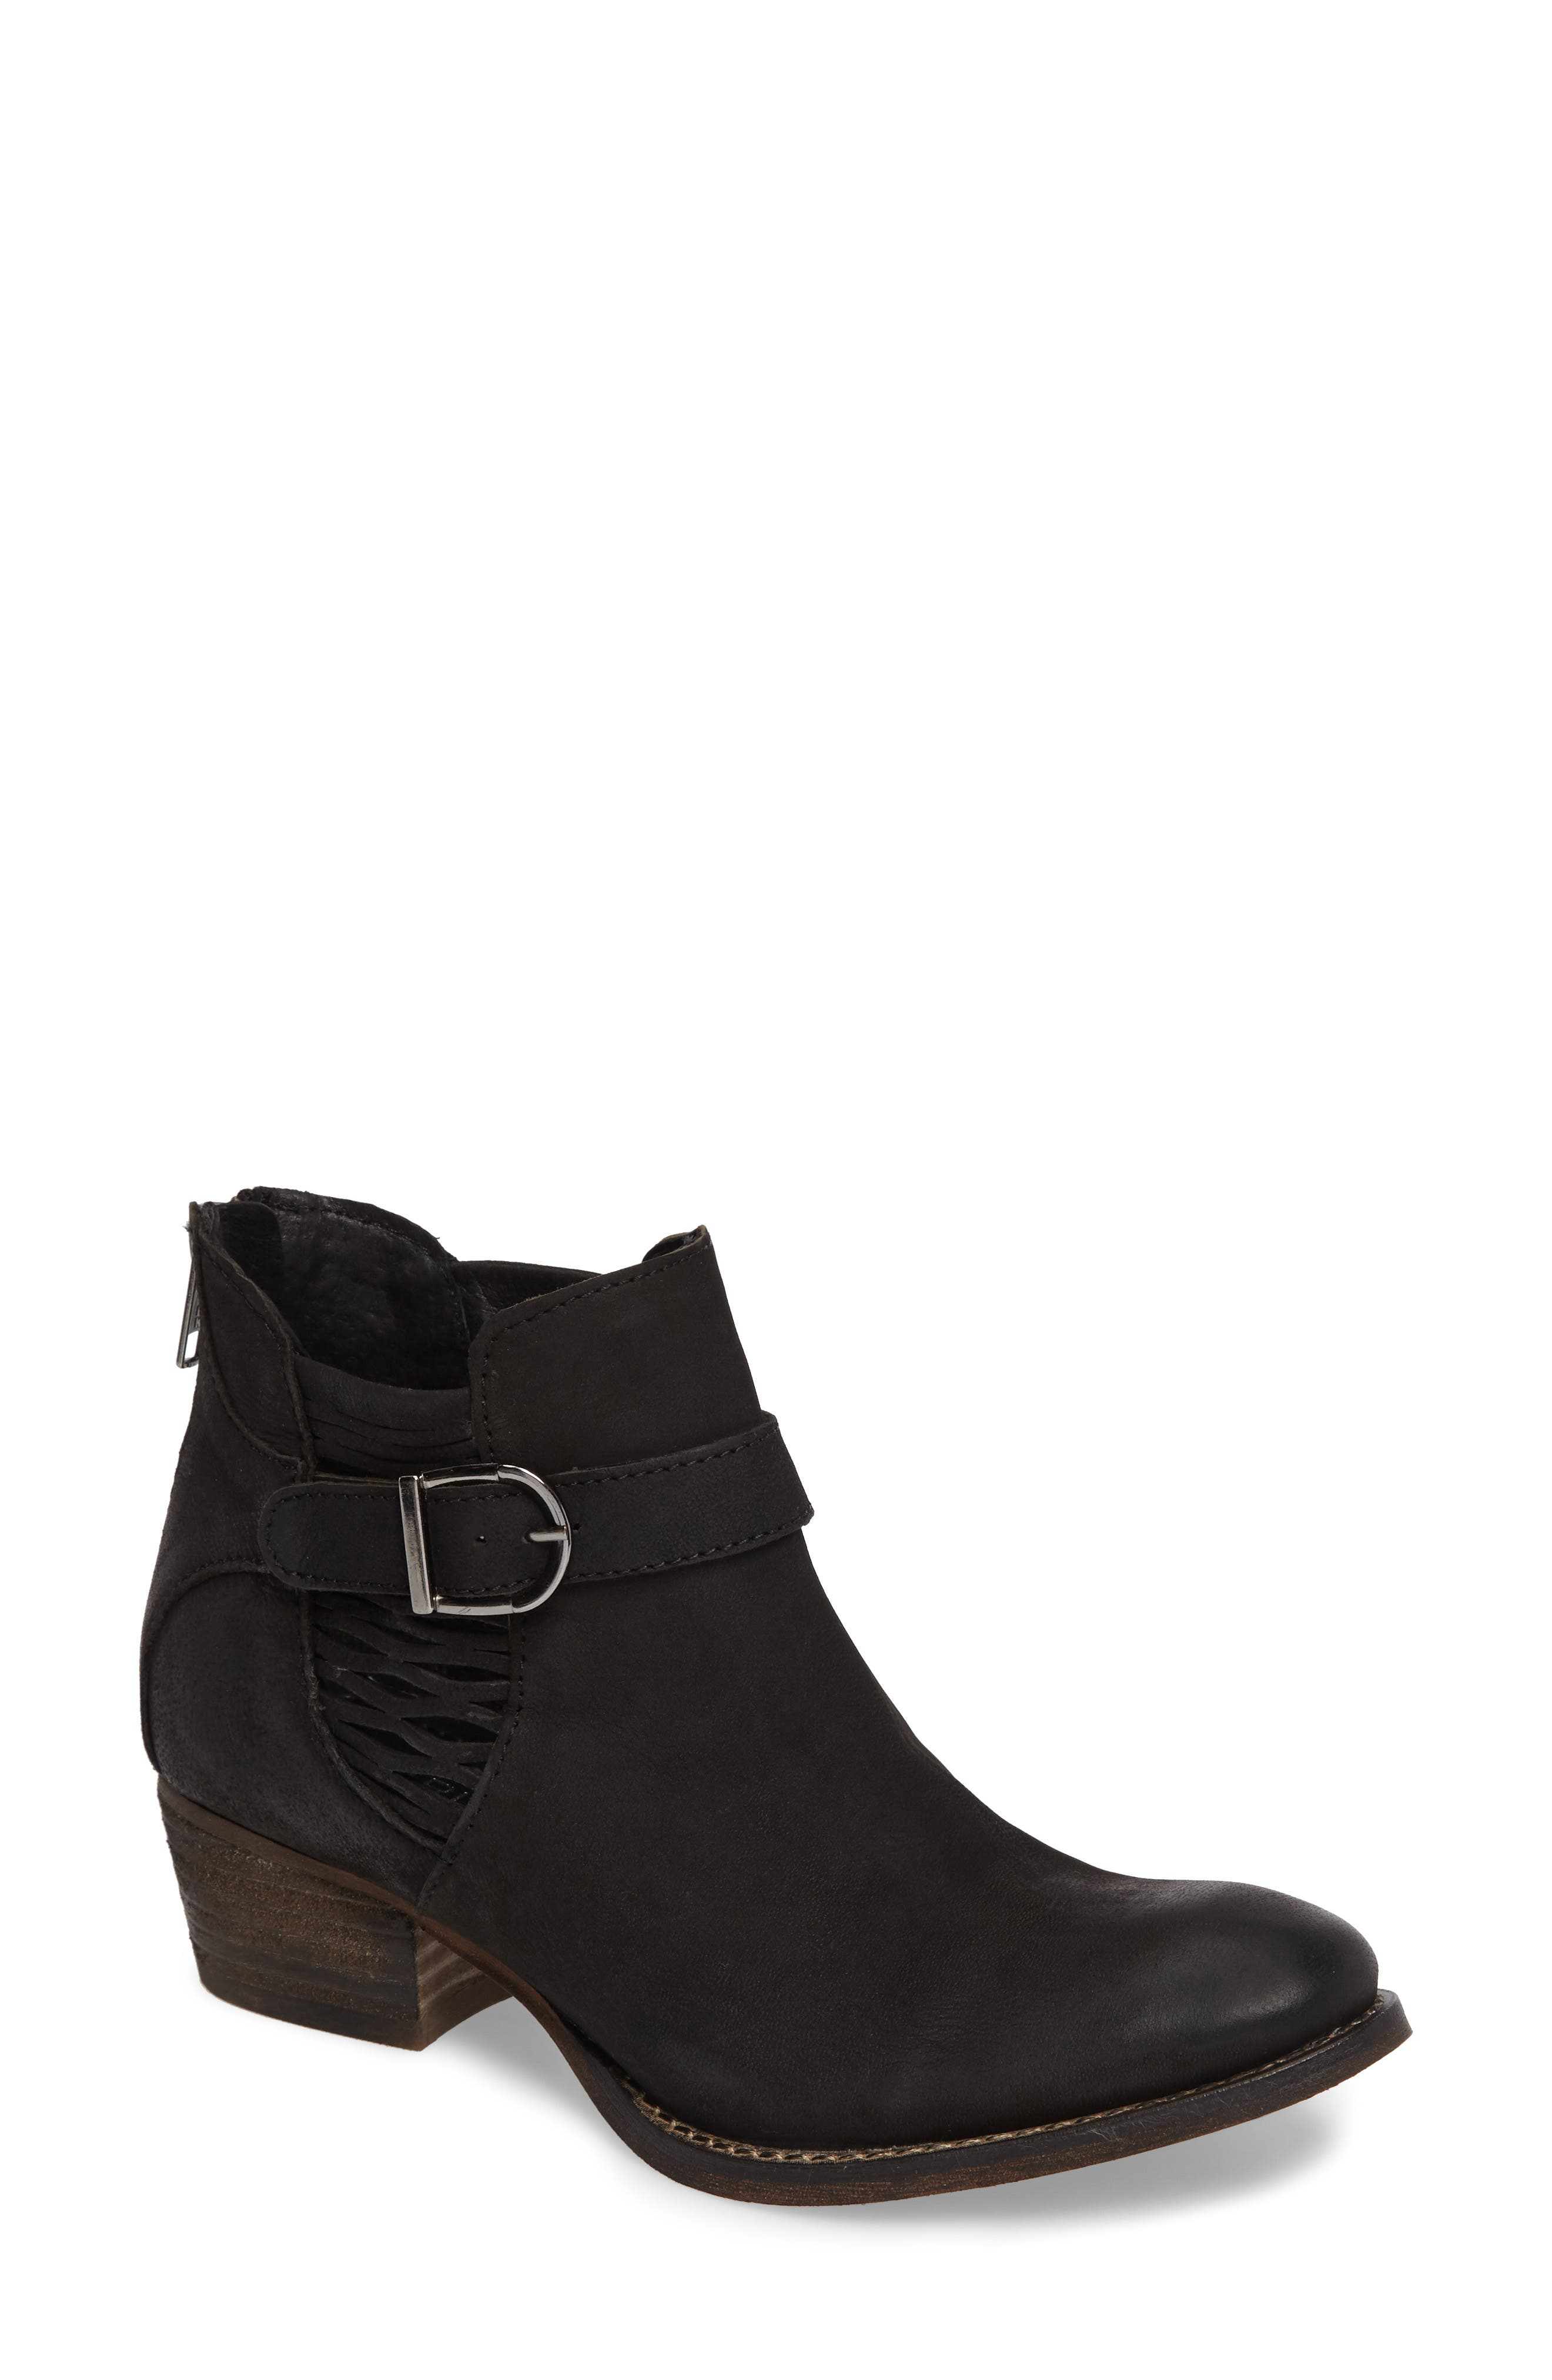 Yara Perforated Chelsea Bootie,                         Main,                         color, 001